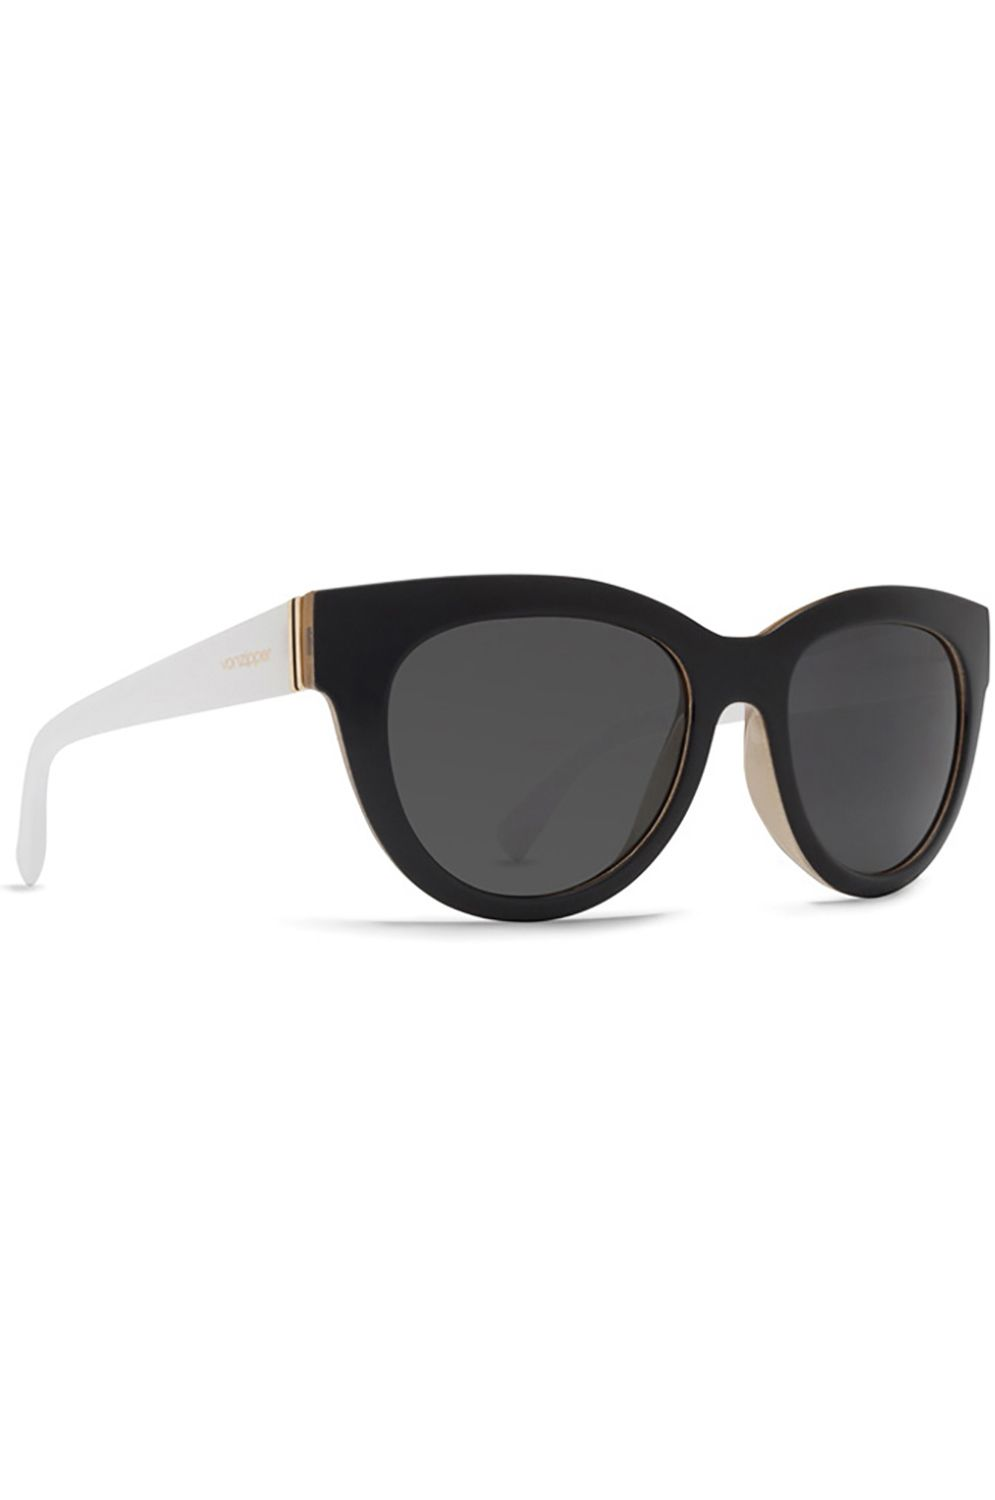 Oculos VonZipper QUEENIE Black Buff White Gloss / Vintage Grey